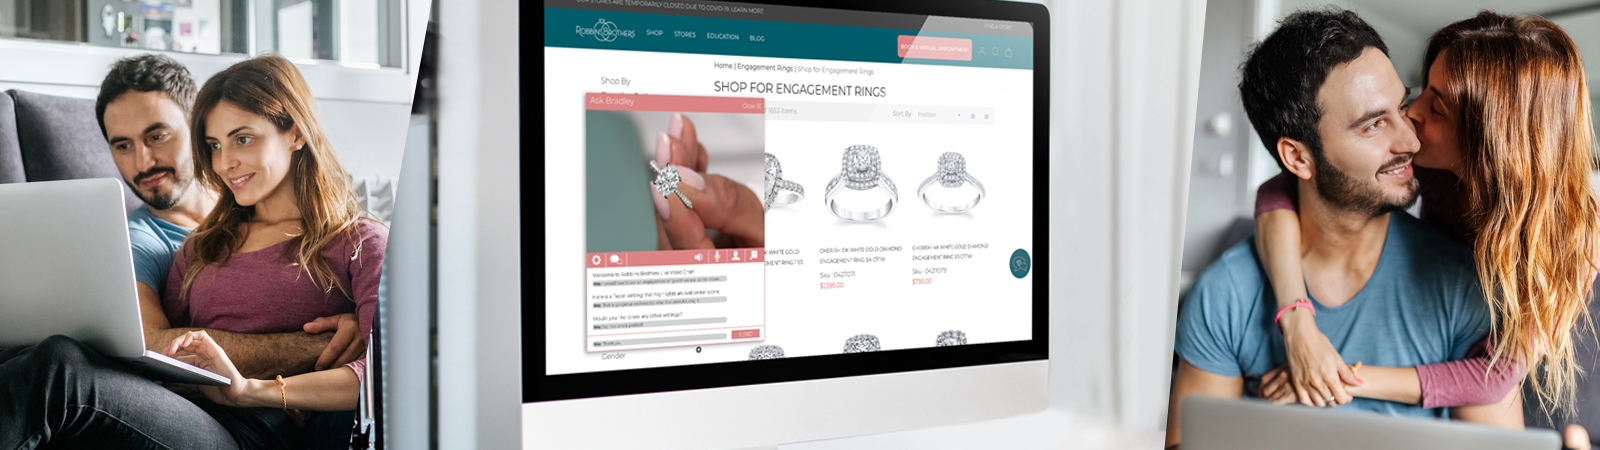 Virtual appointment for Ring And Diamond